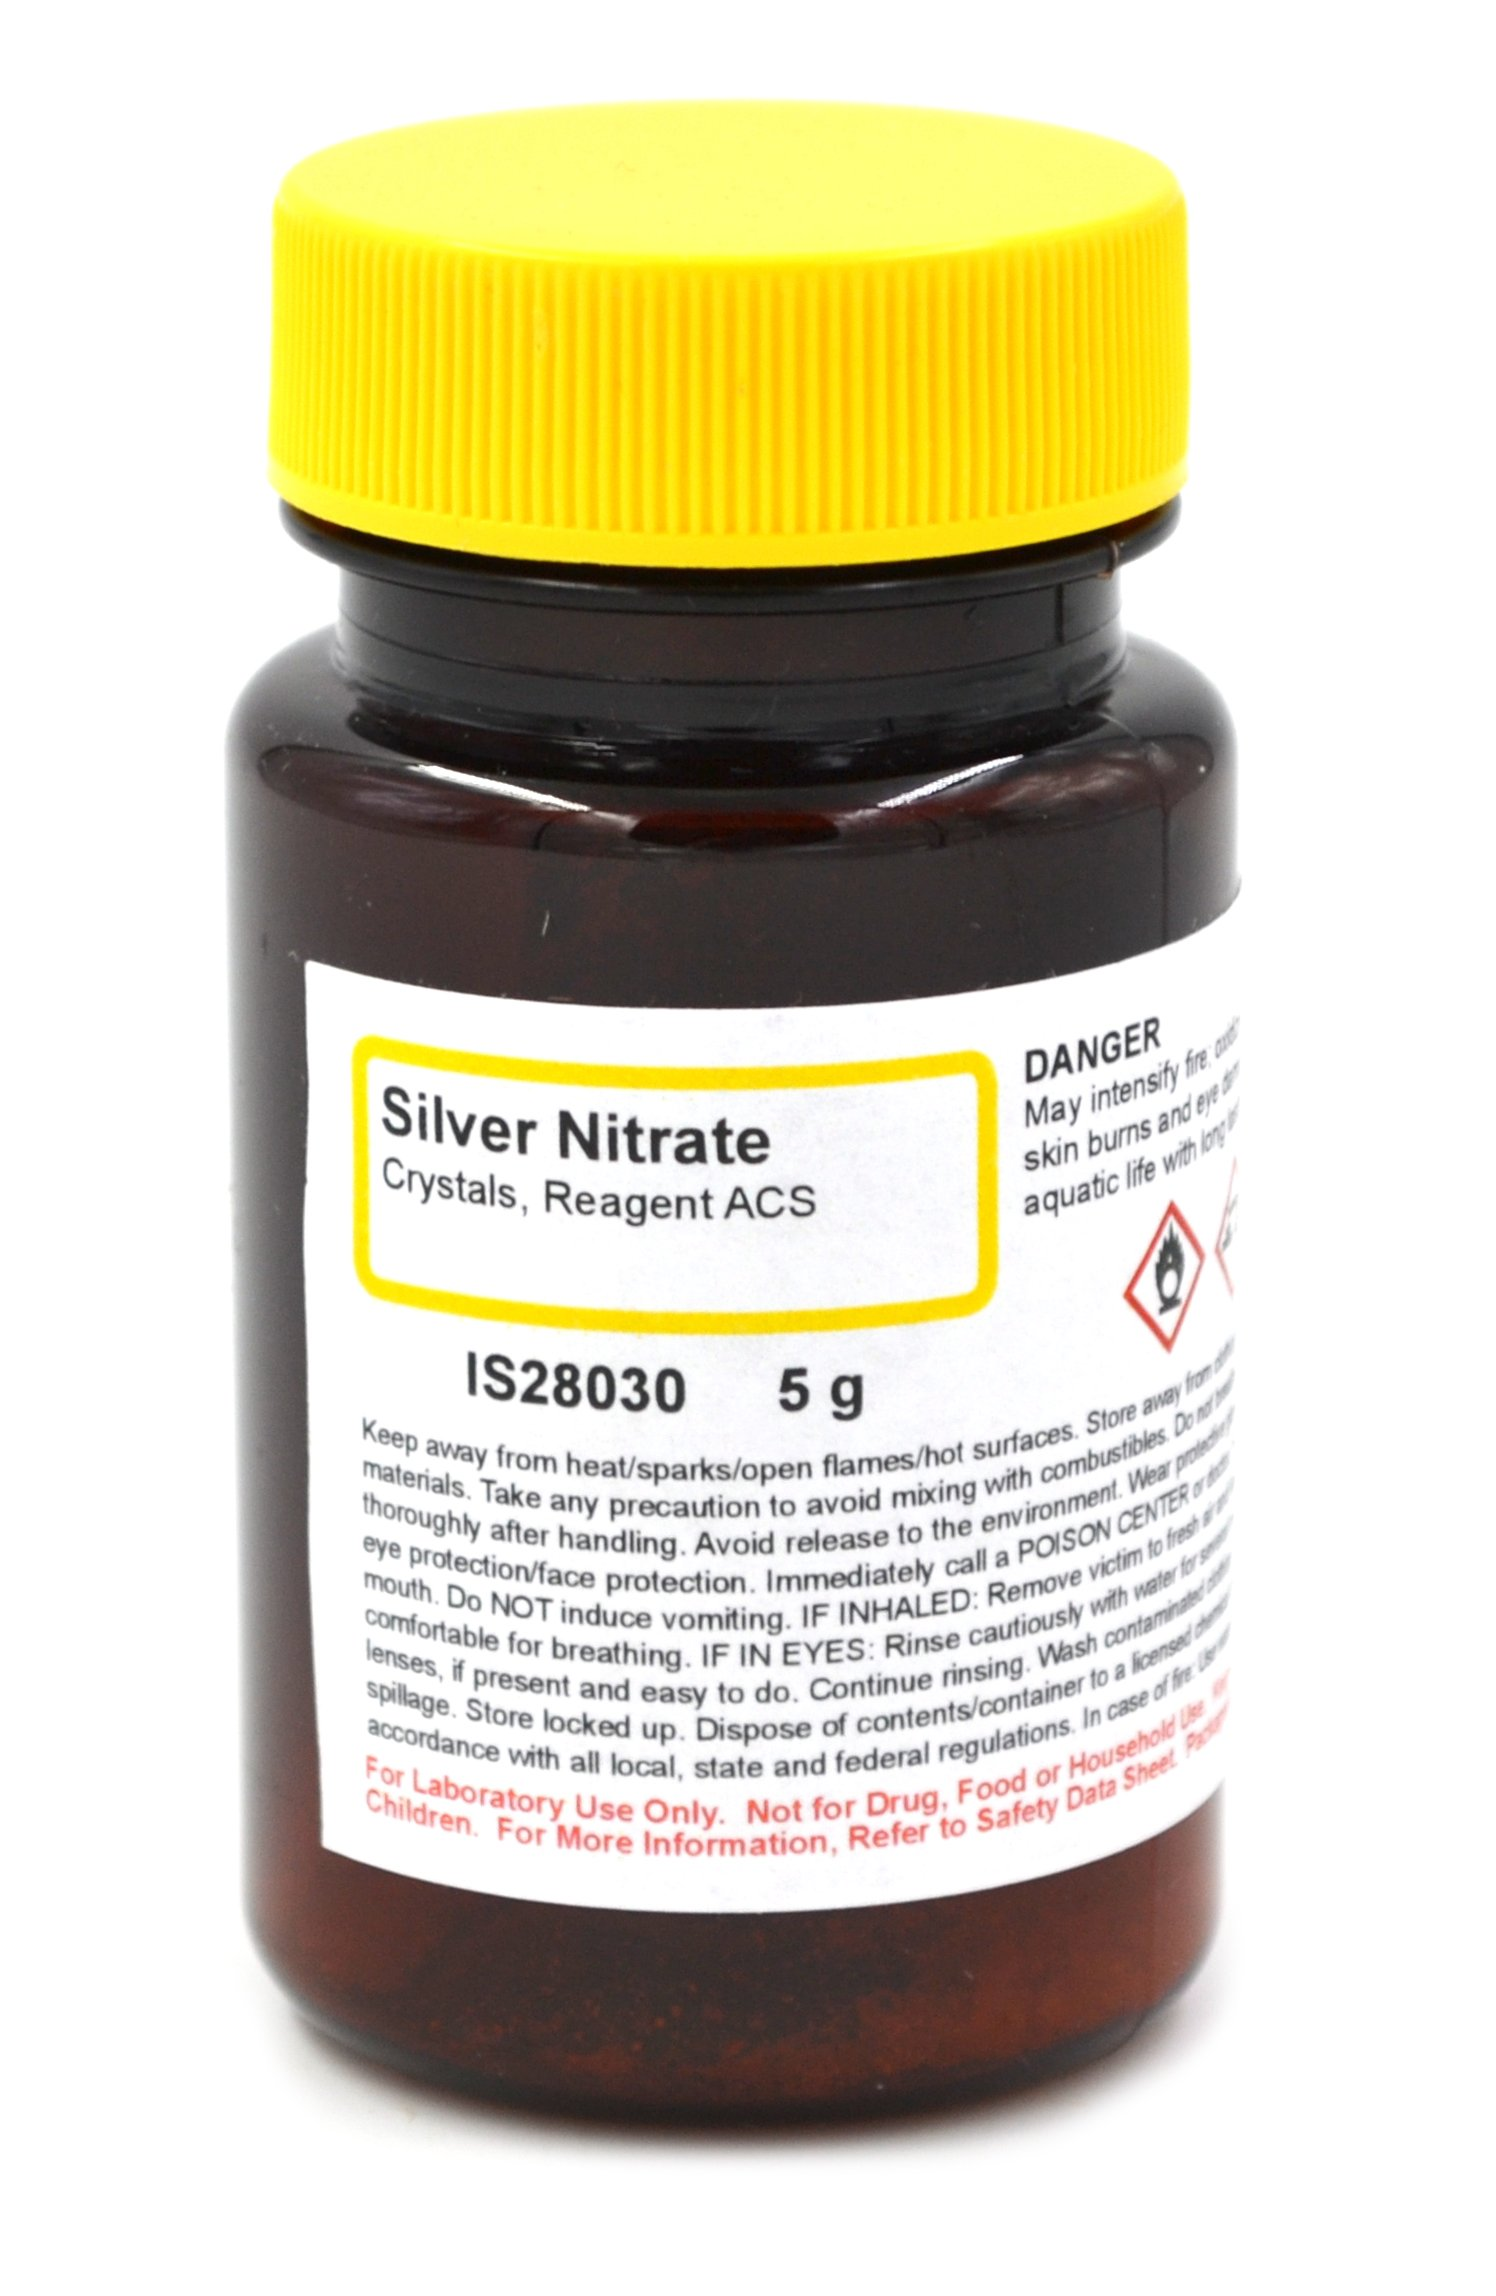 ACS-Grade Silver Nitrate Reagent Crystals, 5g - The Curated Chemical Collection